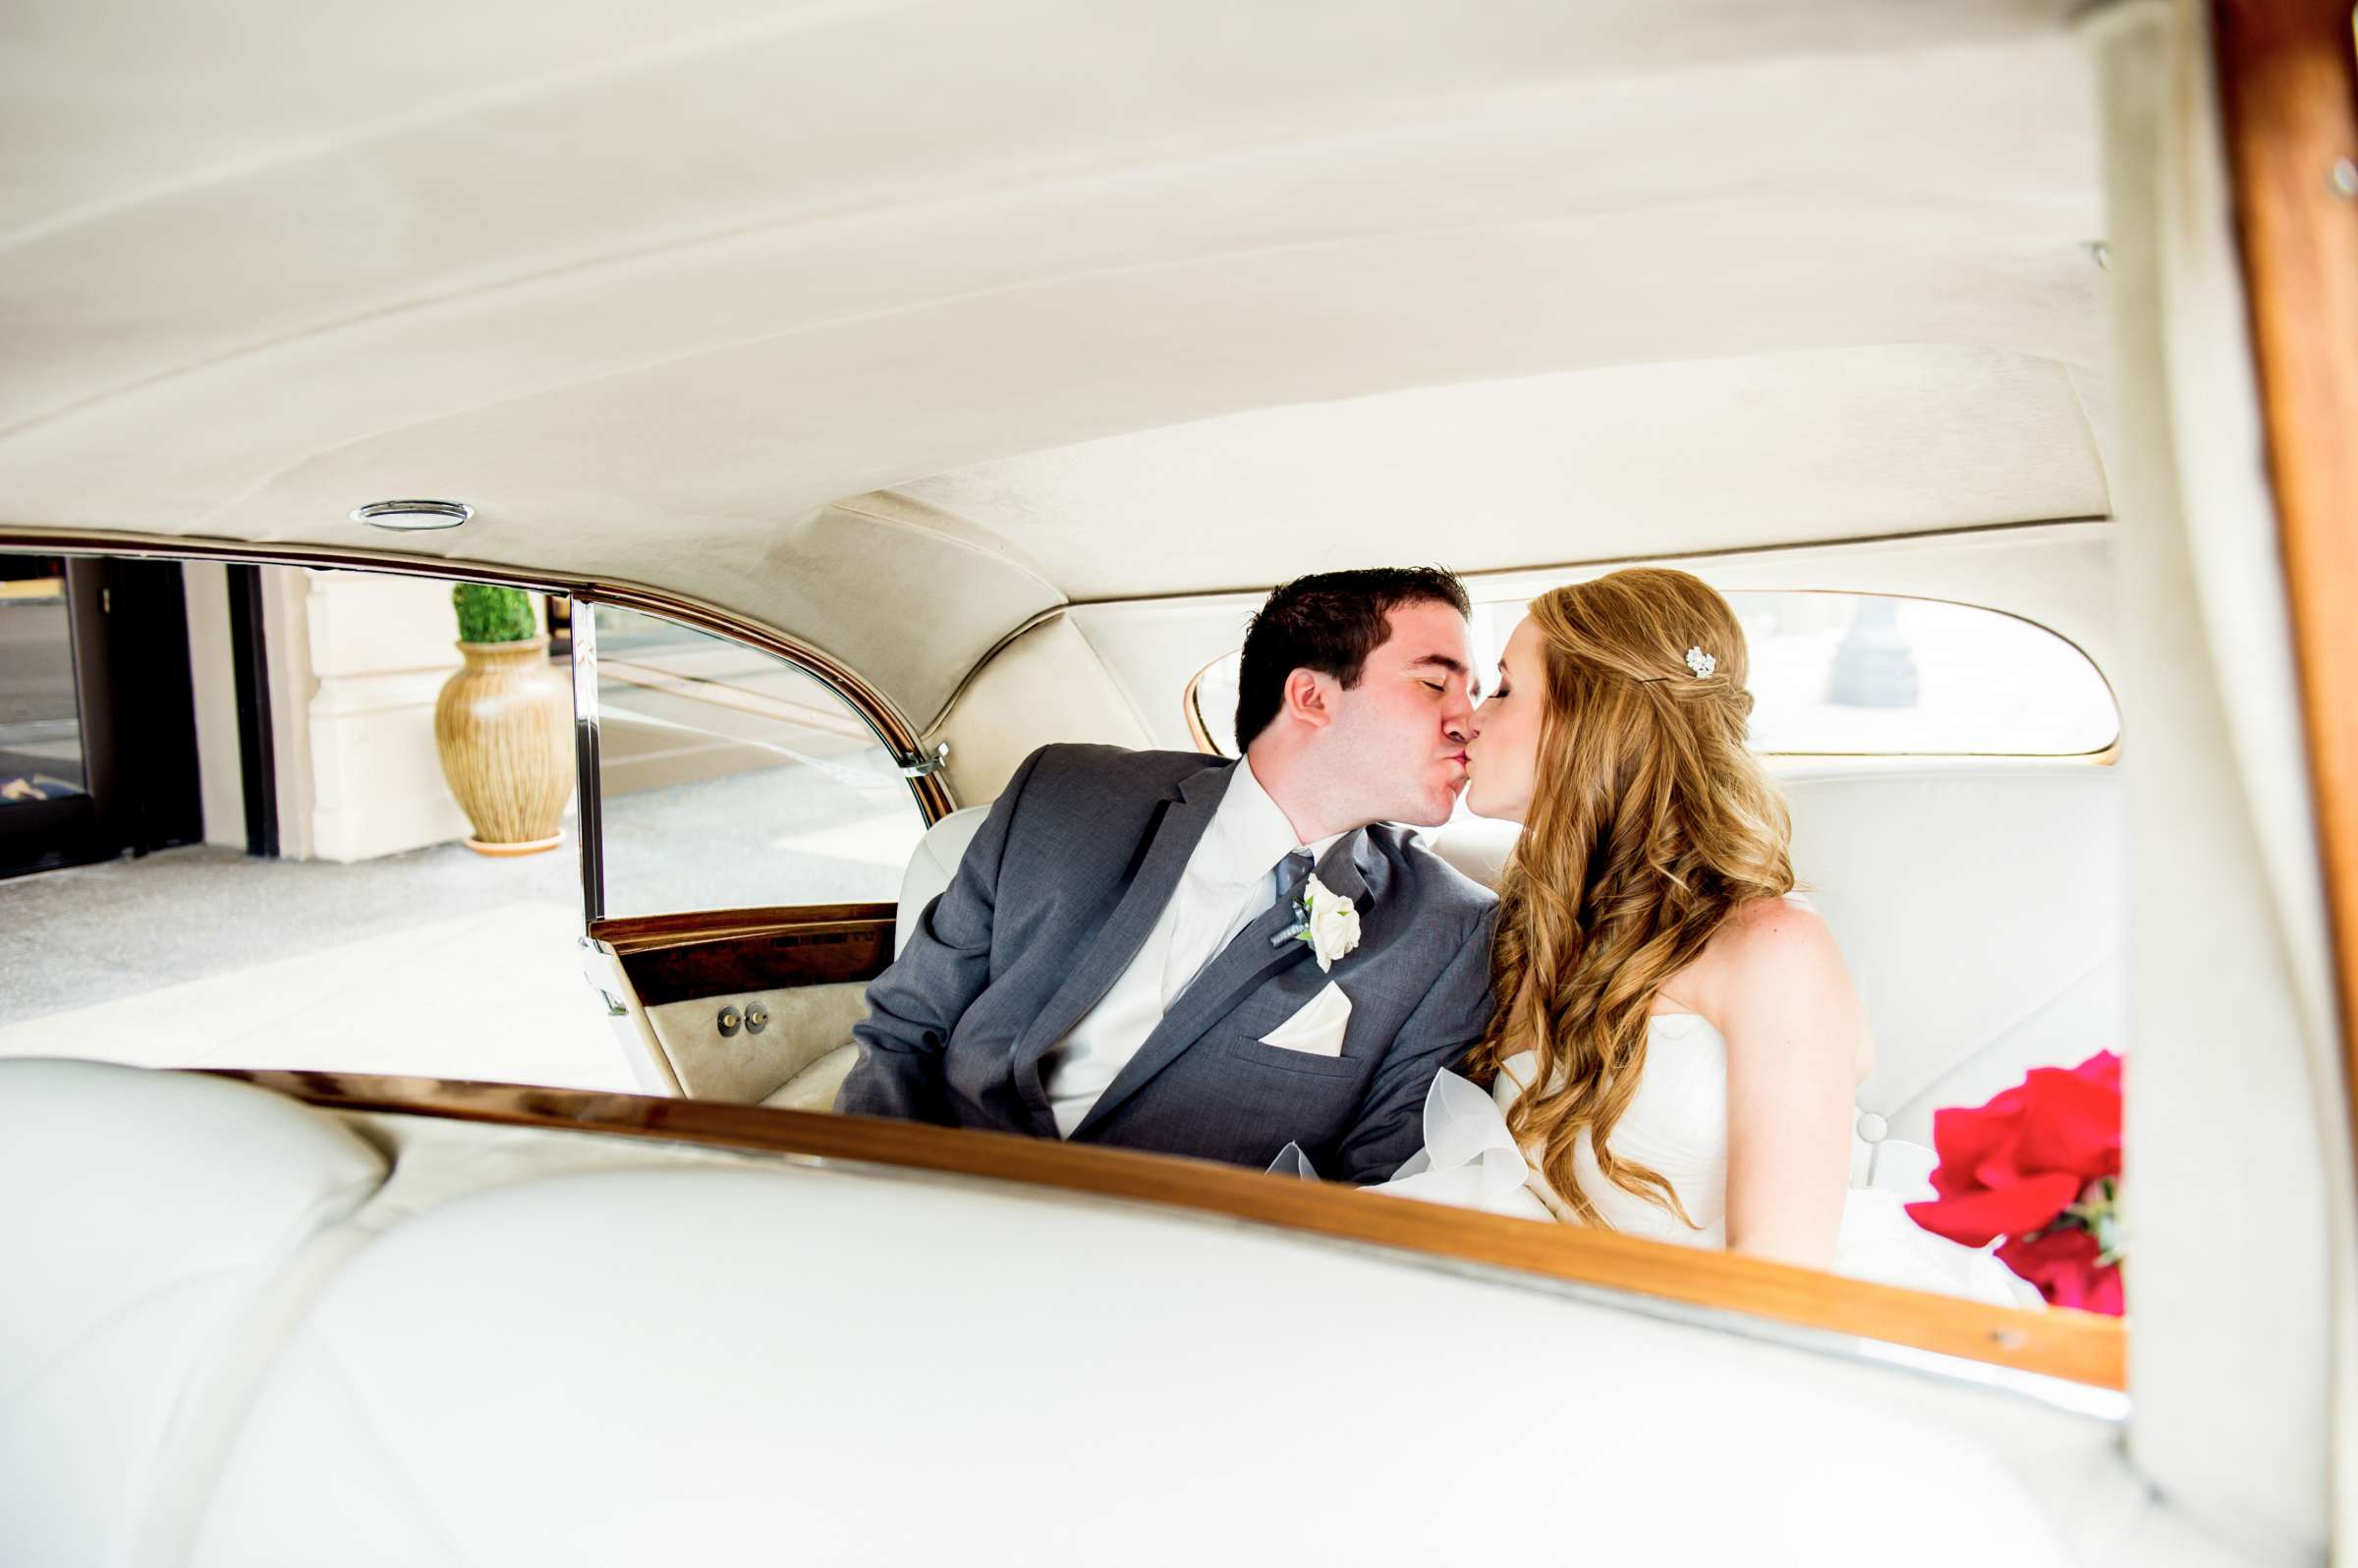 Transportation, Classical moment, Romantic moment at The Prado Wedding coordinated by Victoria Weddings & Events, Melissa and Andrew Wedding Photo #5 by True Photography